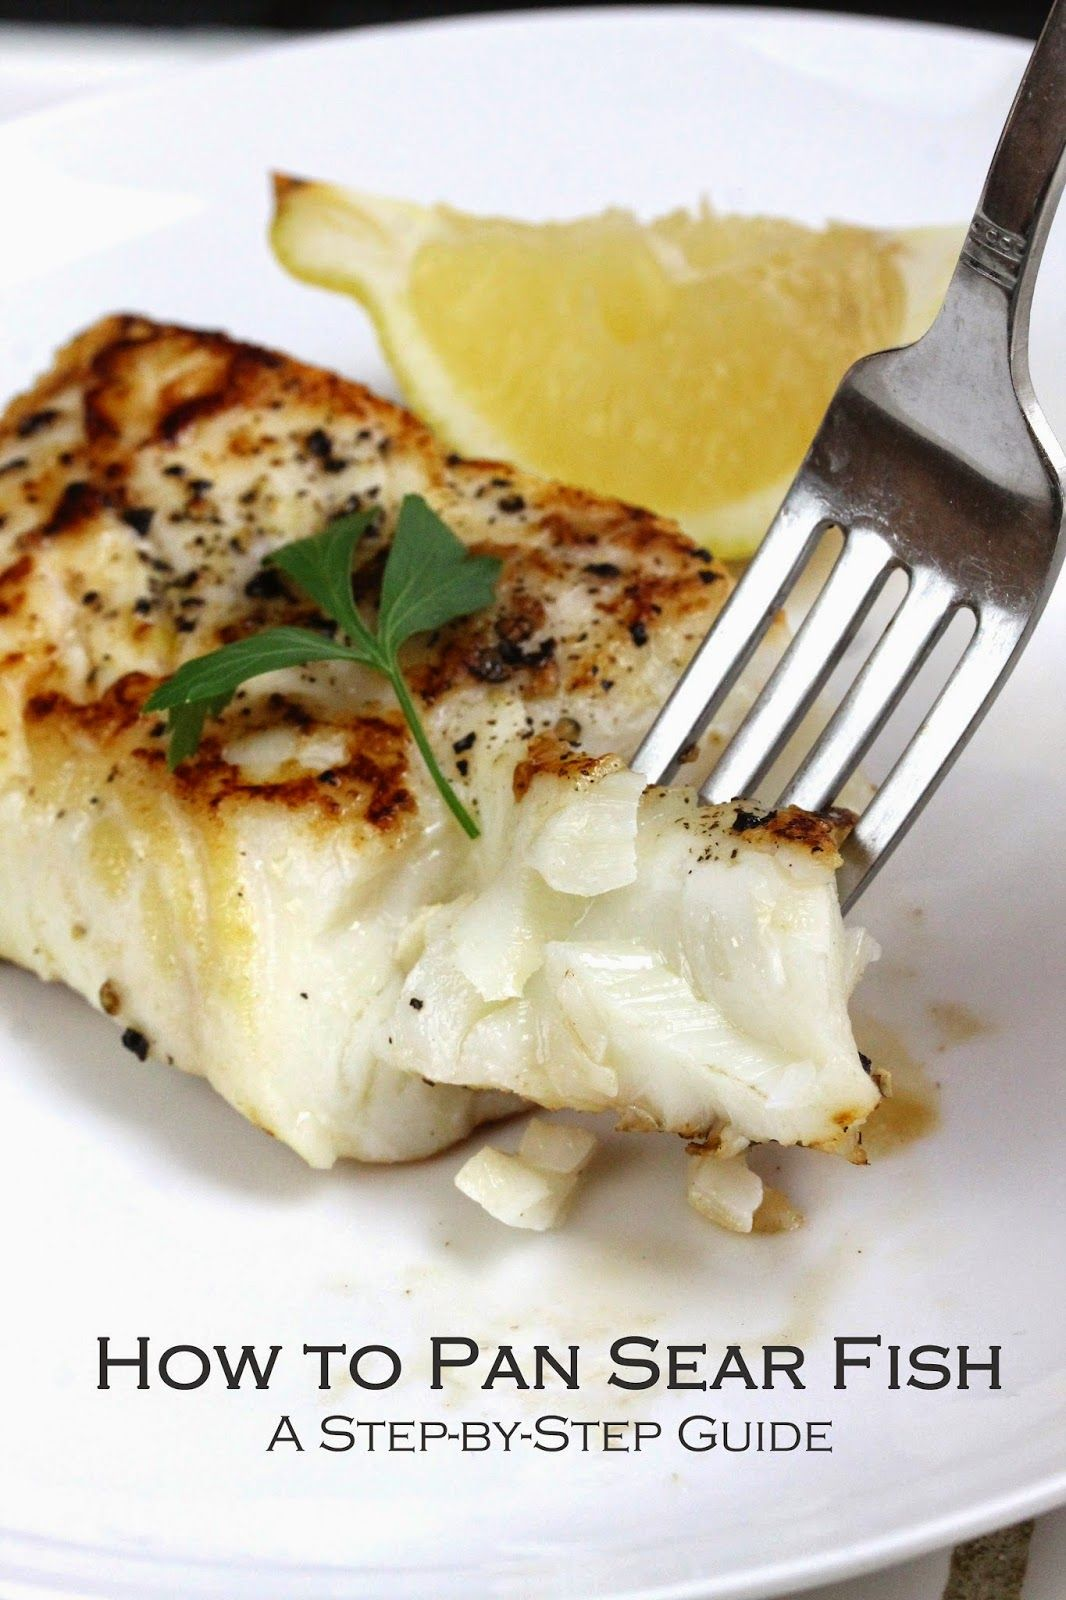 How to Pan Sear Fish